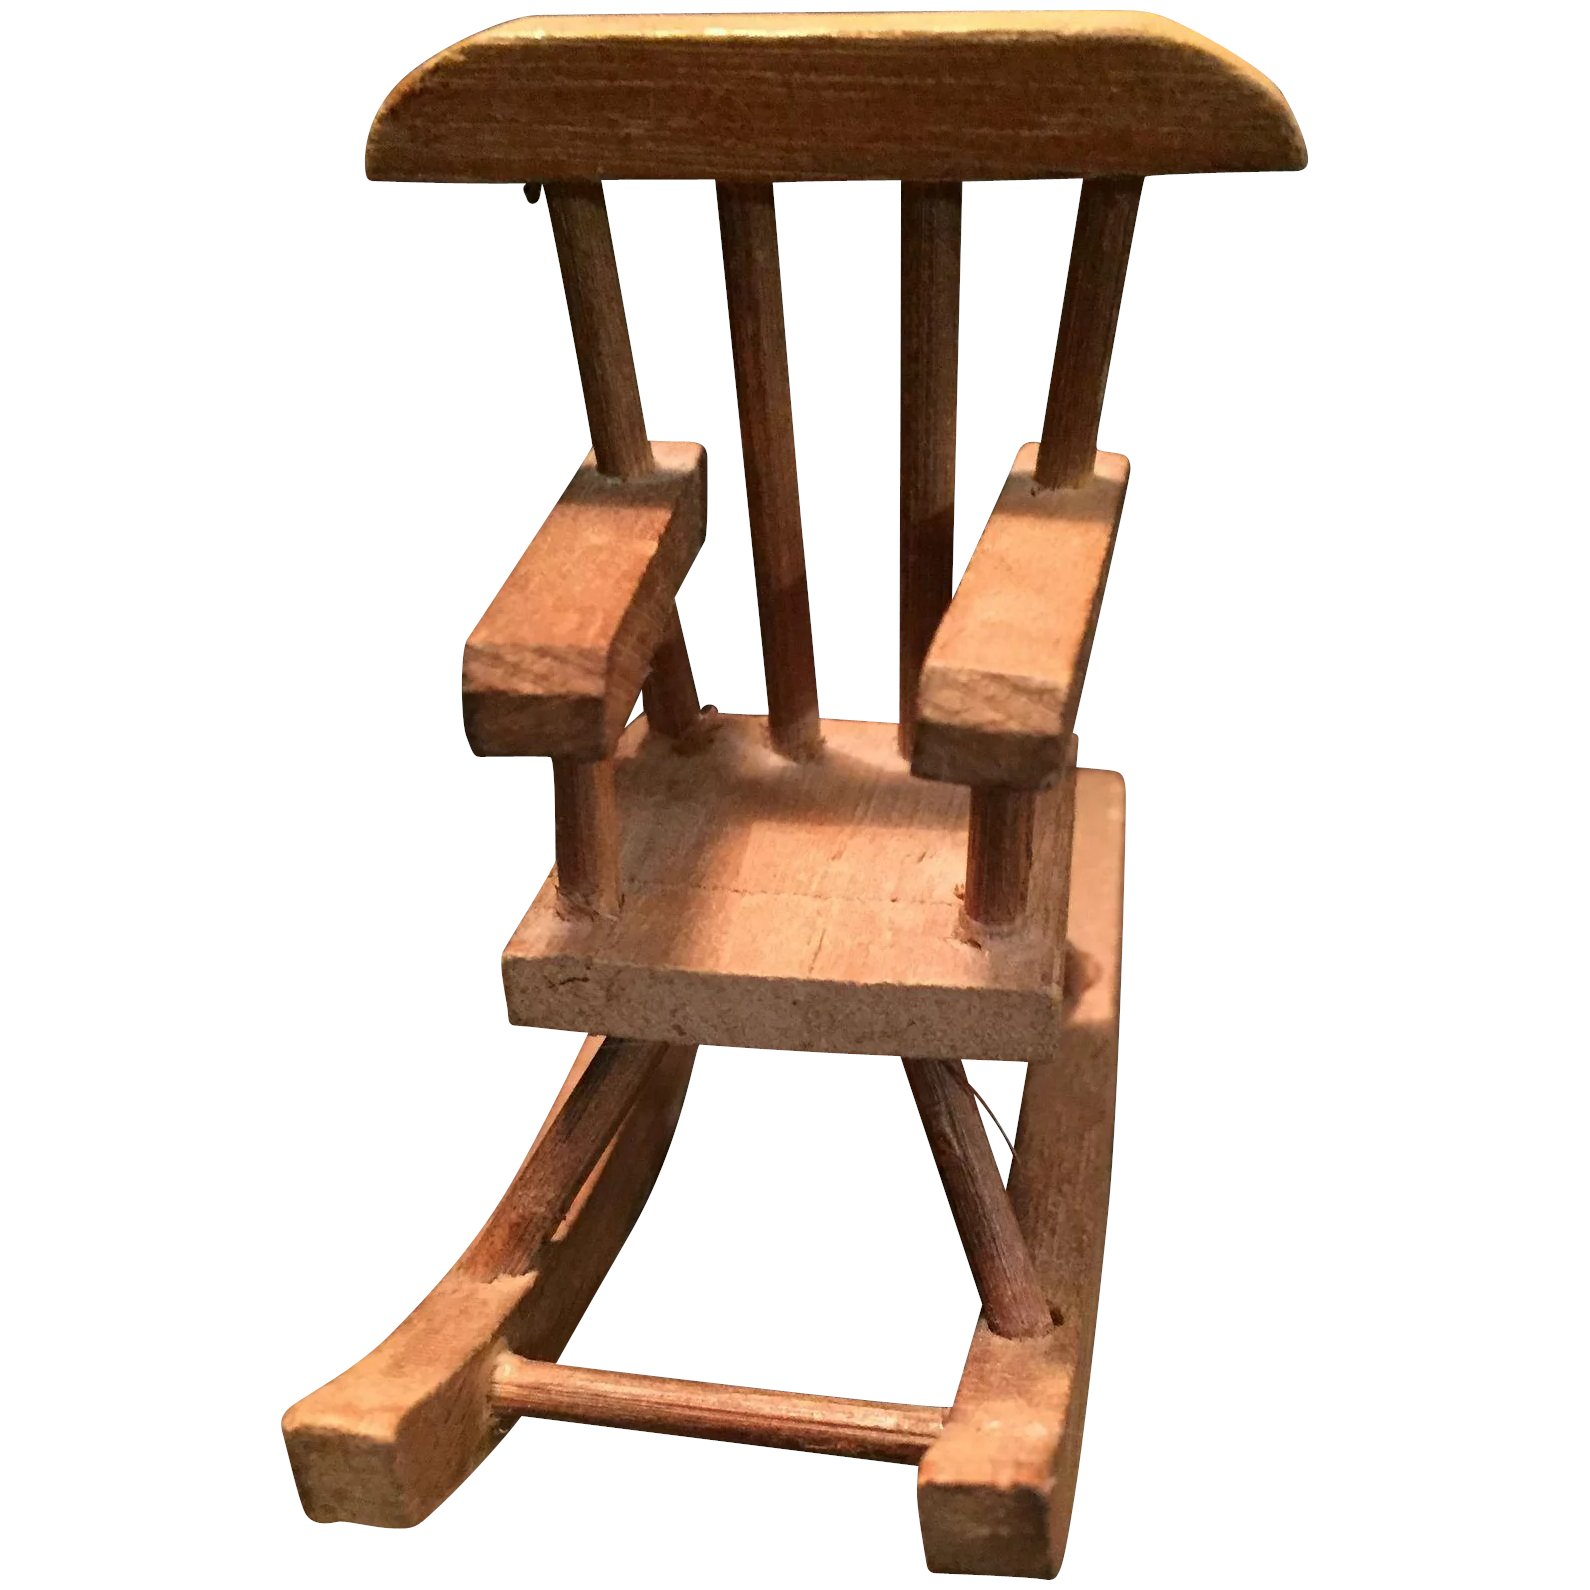 Wondrous Sweet Vintage Doll House Wooden Rocking Chair Ncnpc Chair Design For Home Ncnpcorg